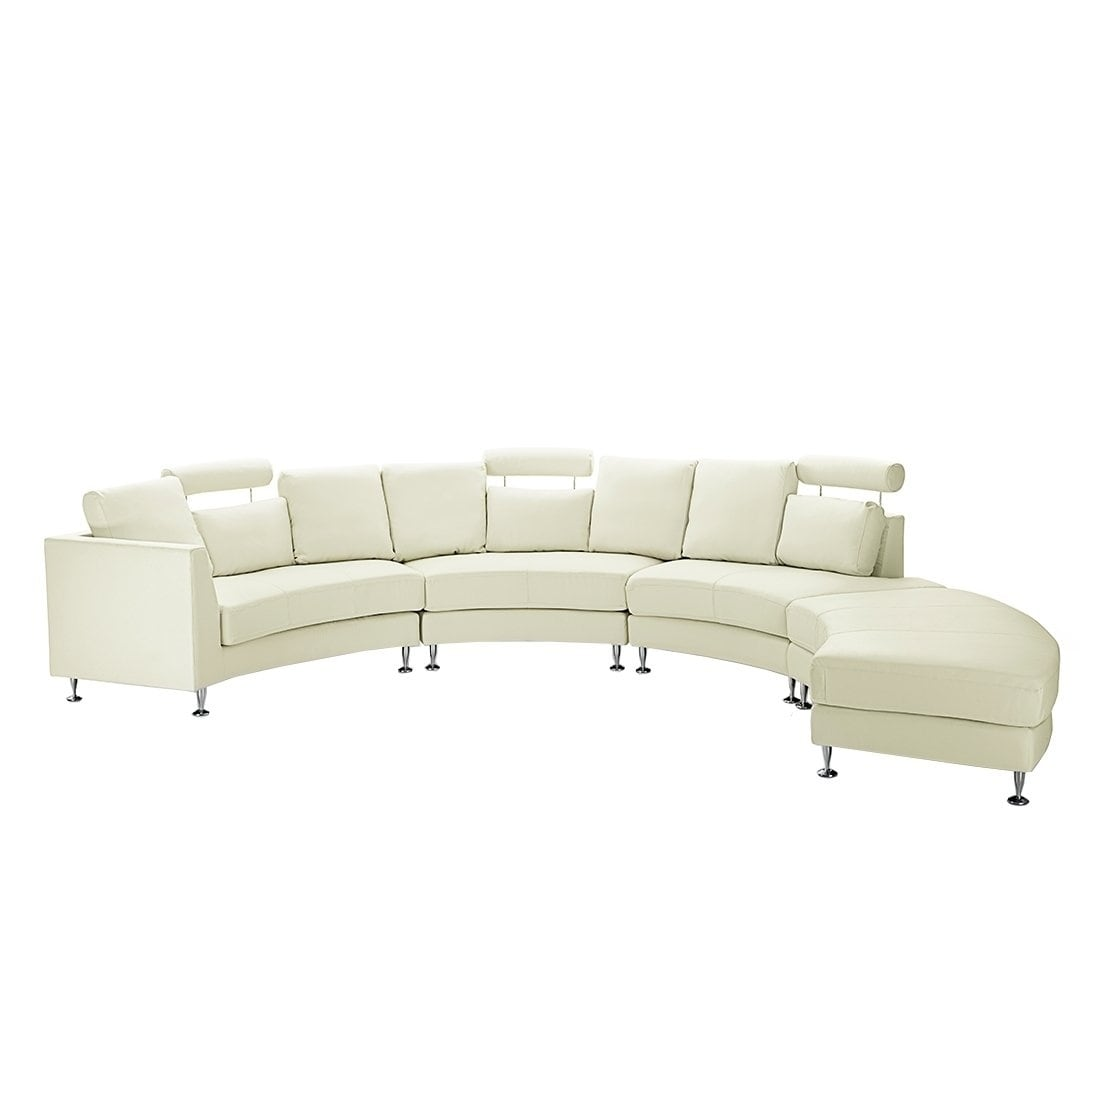 Curved Sofa Sectional Leather: Curved Sectional Sofa Cream Leather ROTUNDE